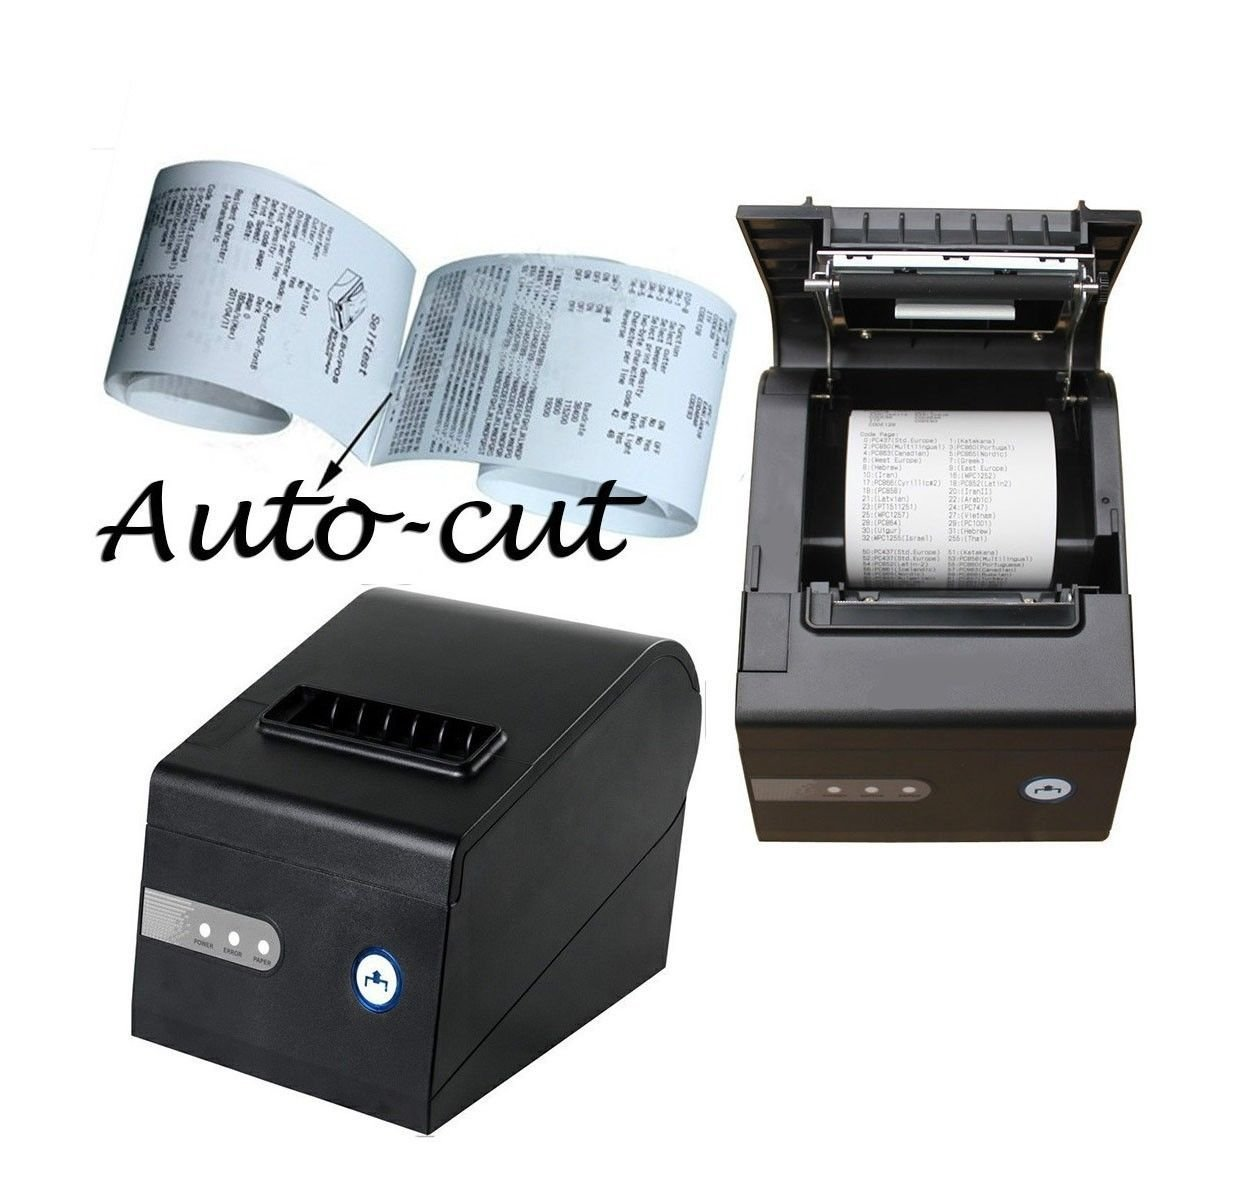 2xhome 80mm Thermal Receipt Printer USB Auto Cutting Cut Autocut Cash Register Cashier POS Small Business... by 2xhome